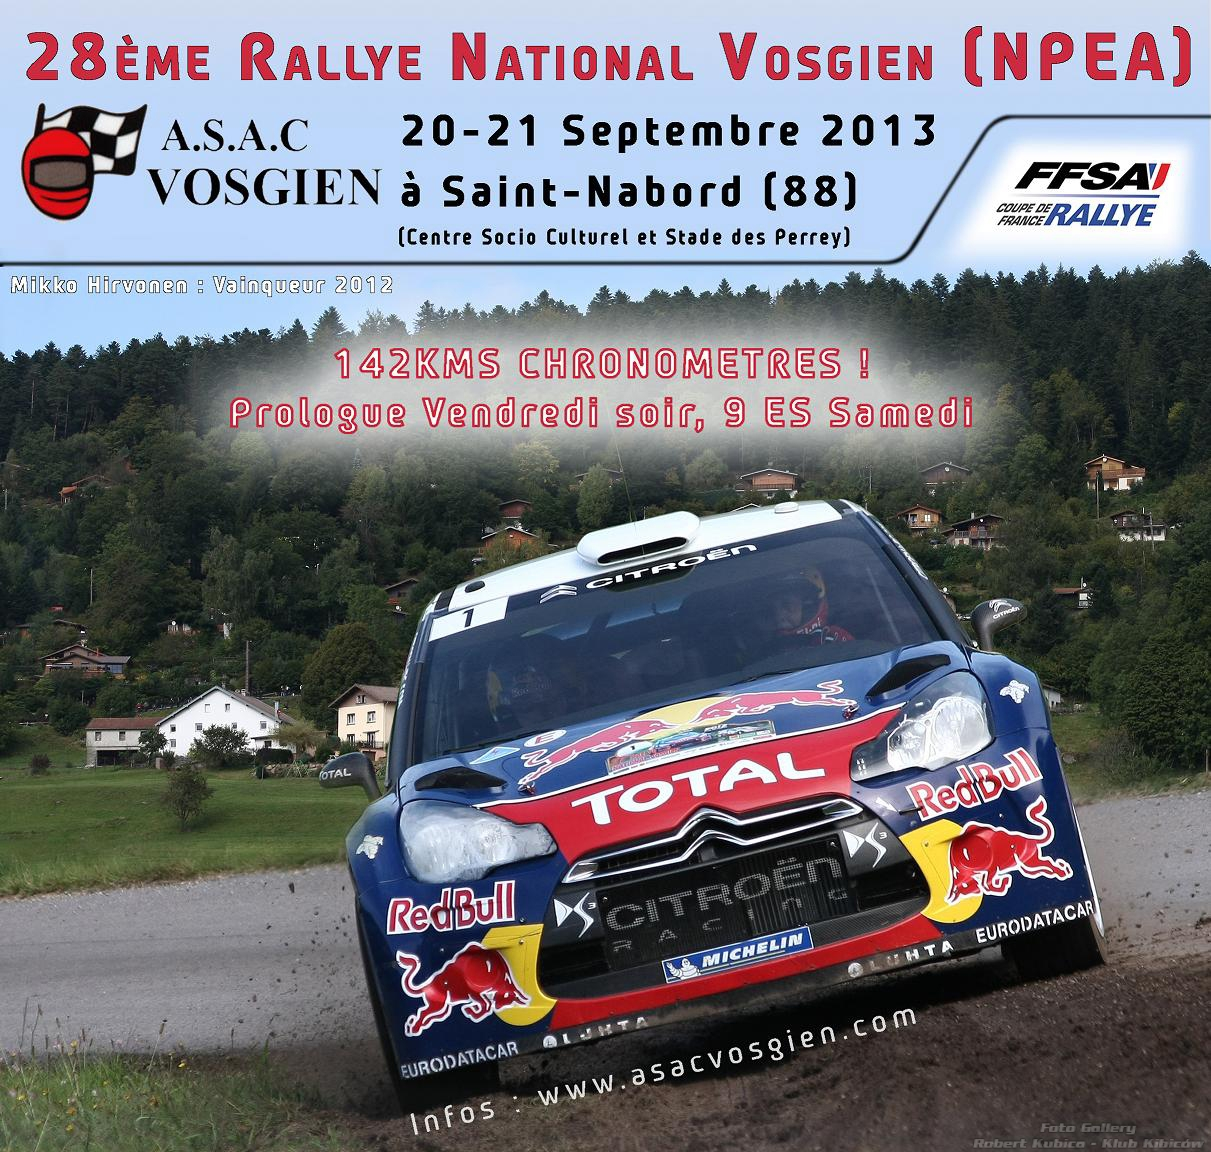 Robert Kubica 51°Rallye National Vosgien